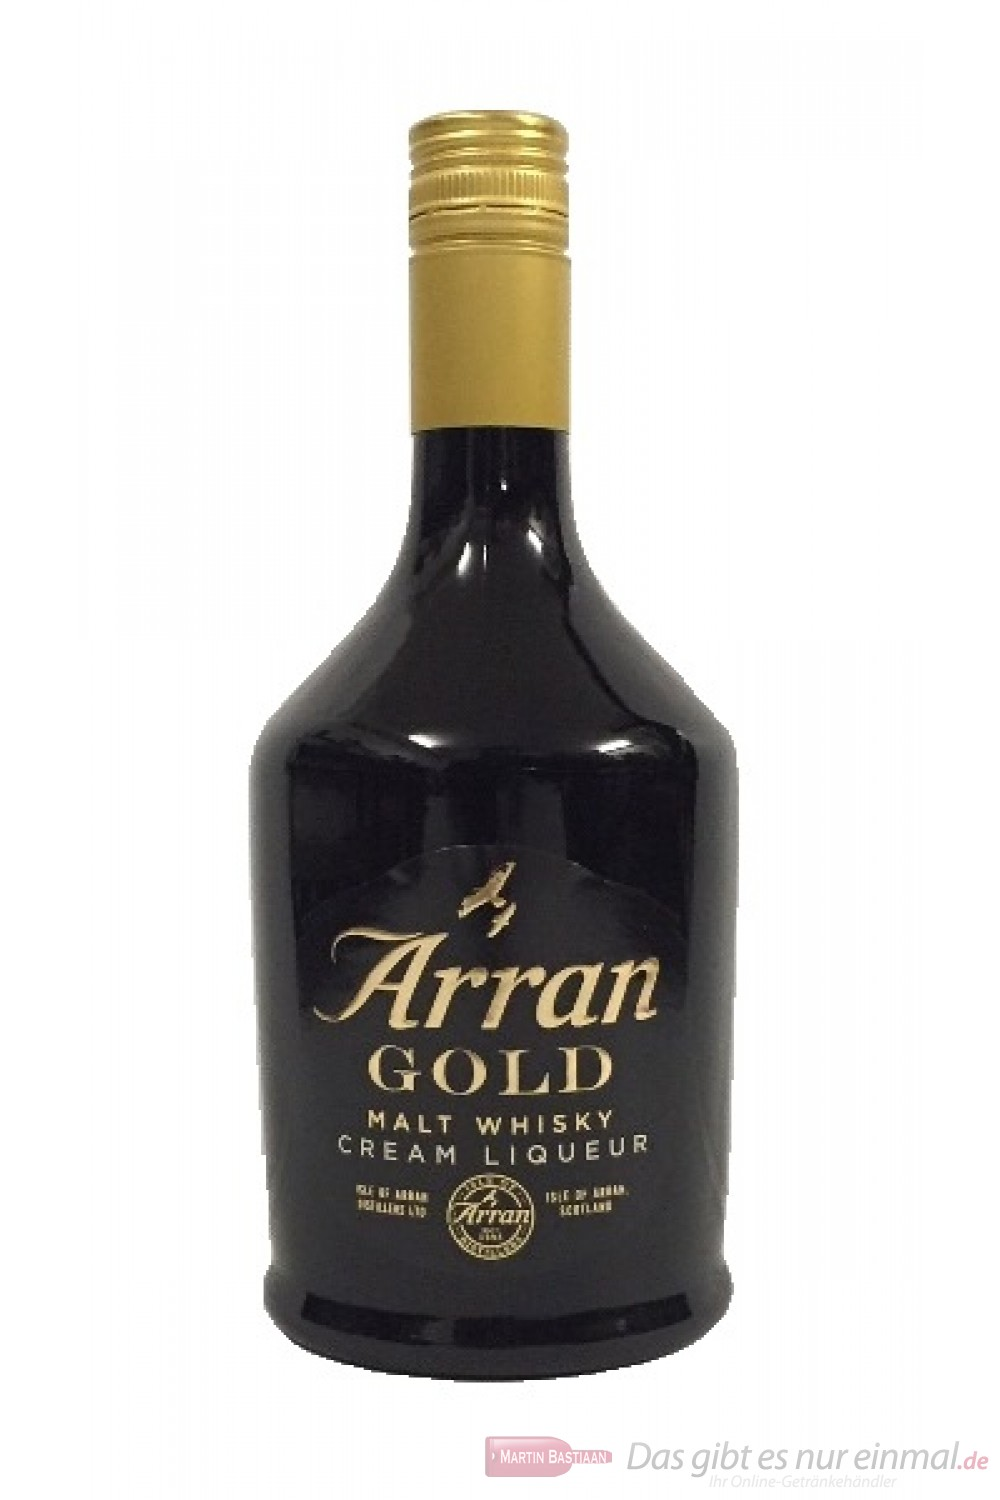 The Arran Gold Cream